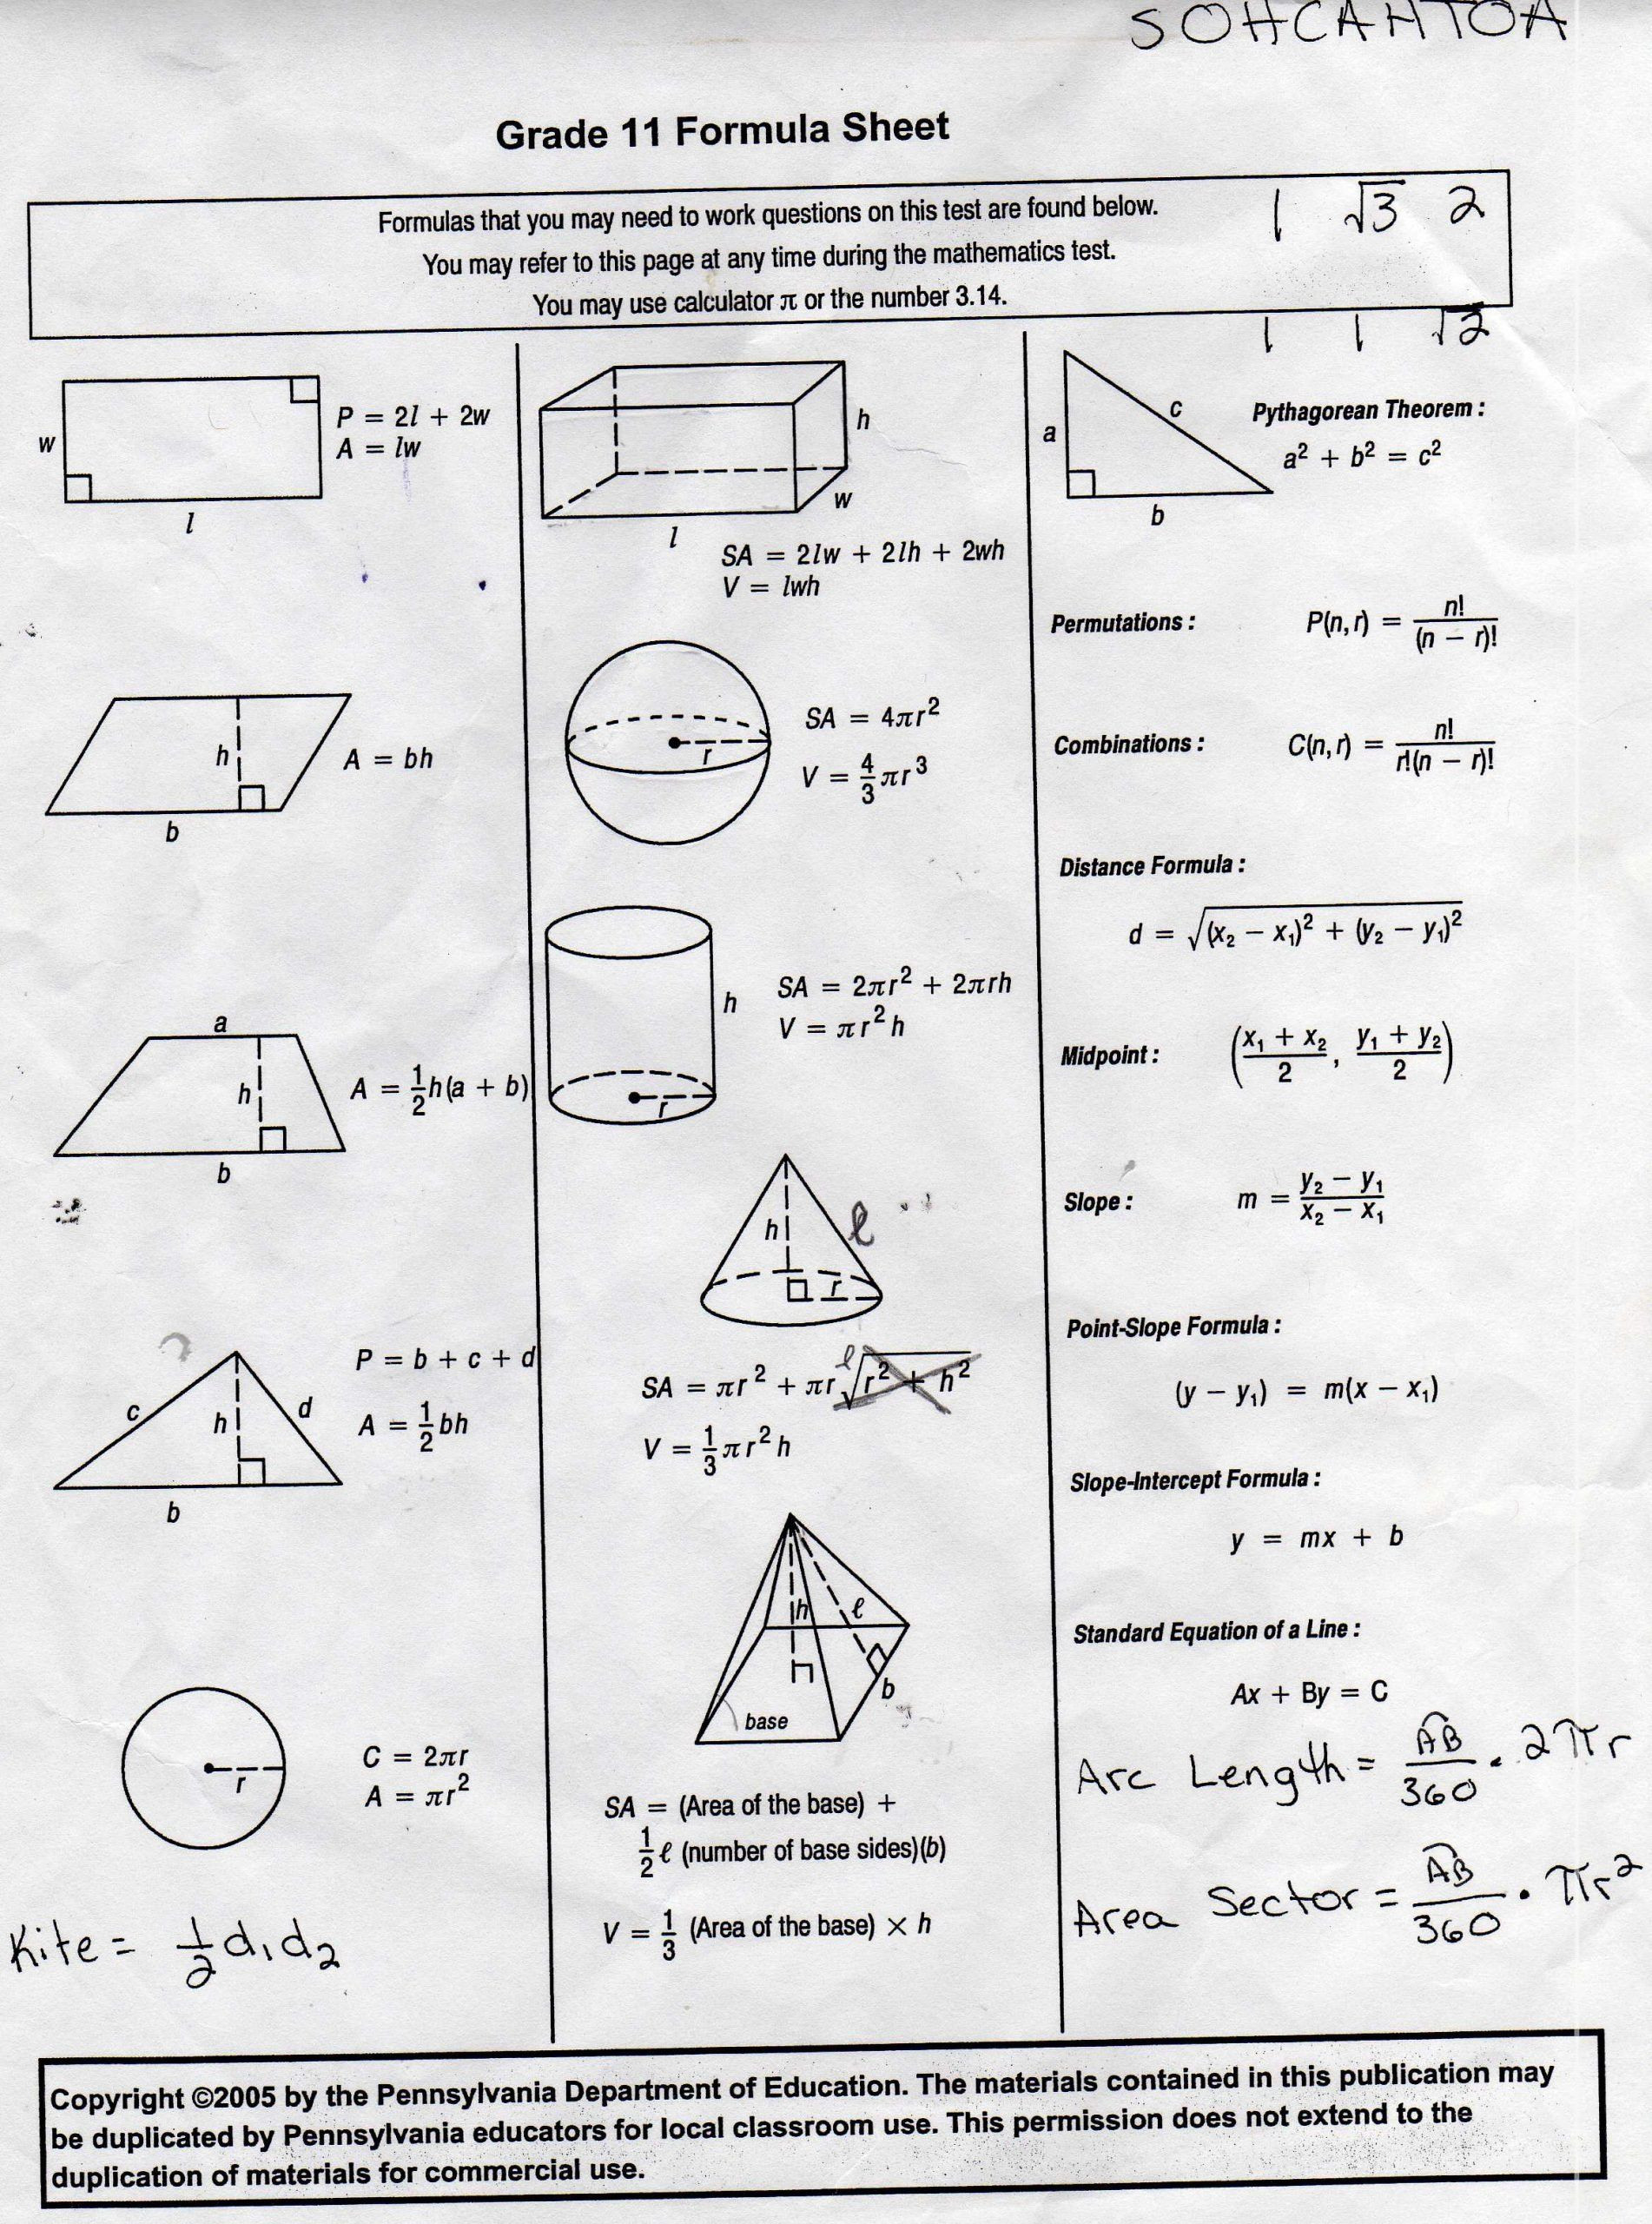 9th Grade Geometry Worksheets Pin On 1st Grade Worksheets & Free Printables